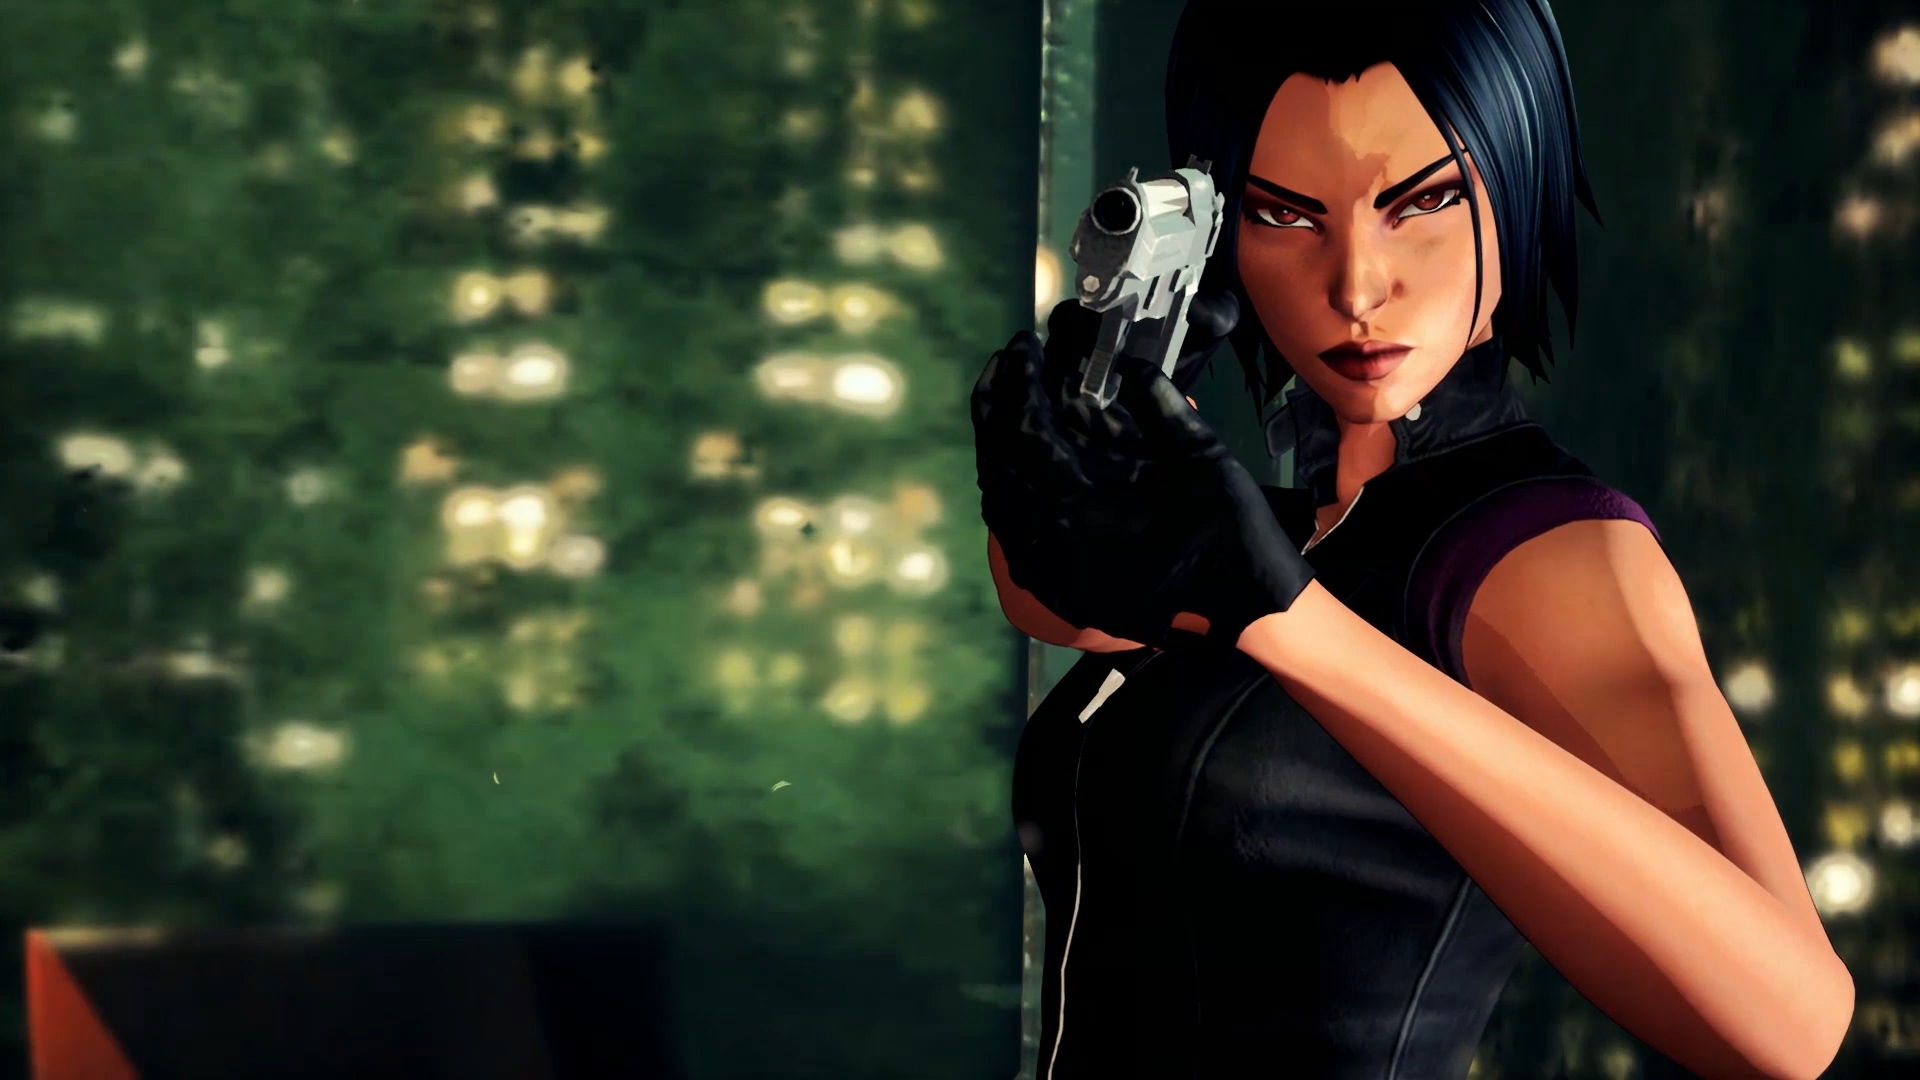 Арт к игре Fear Effect: Reinvented